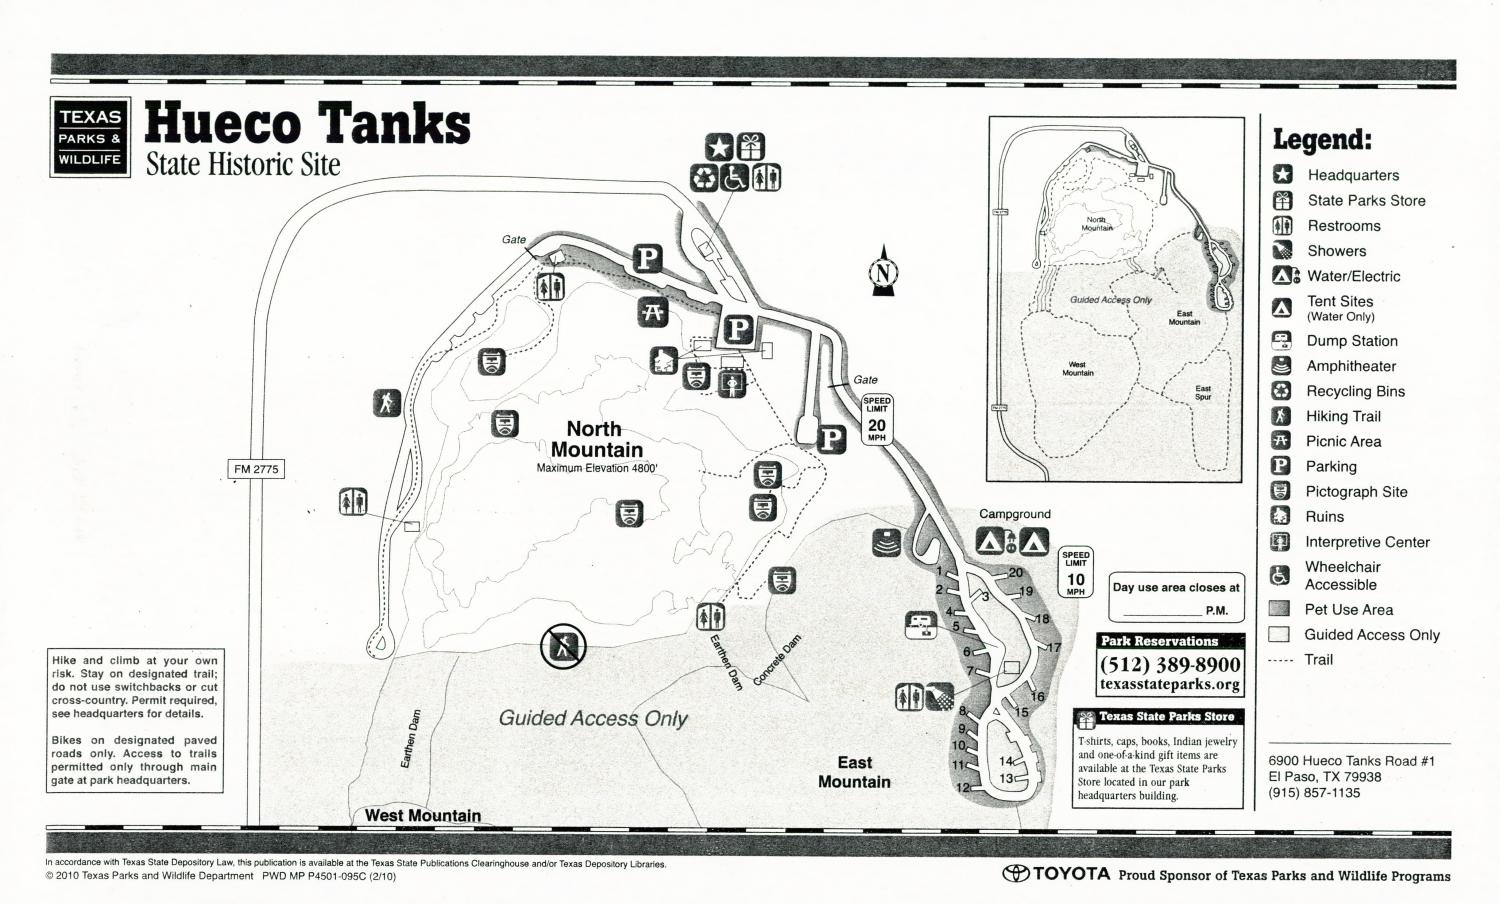 Hueco Tanks State Historic Site, Map of the Hueco Tanks State Historic Site outlining hiking trails and highlighting activities, facilities, and other features such as bathrooms, lodgings, water/electric, etc. It also contains general information for the park and for the Texas Parks and Wildlife Department.,